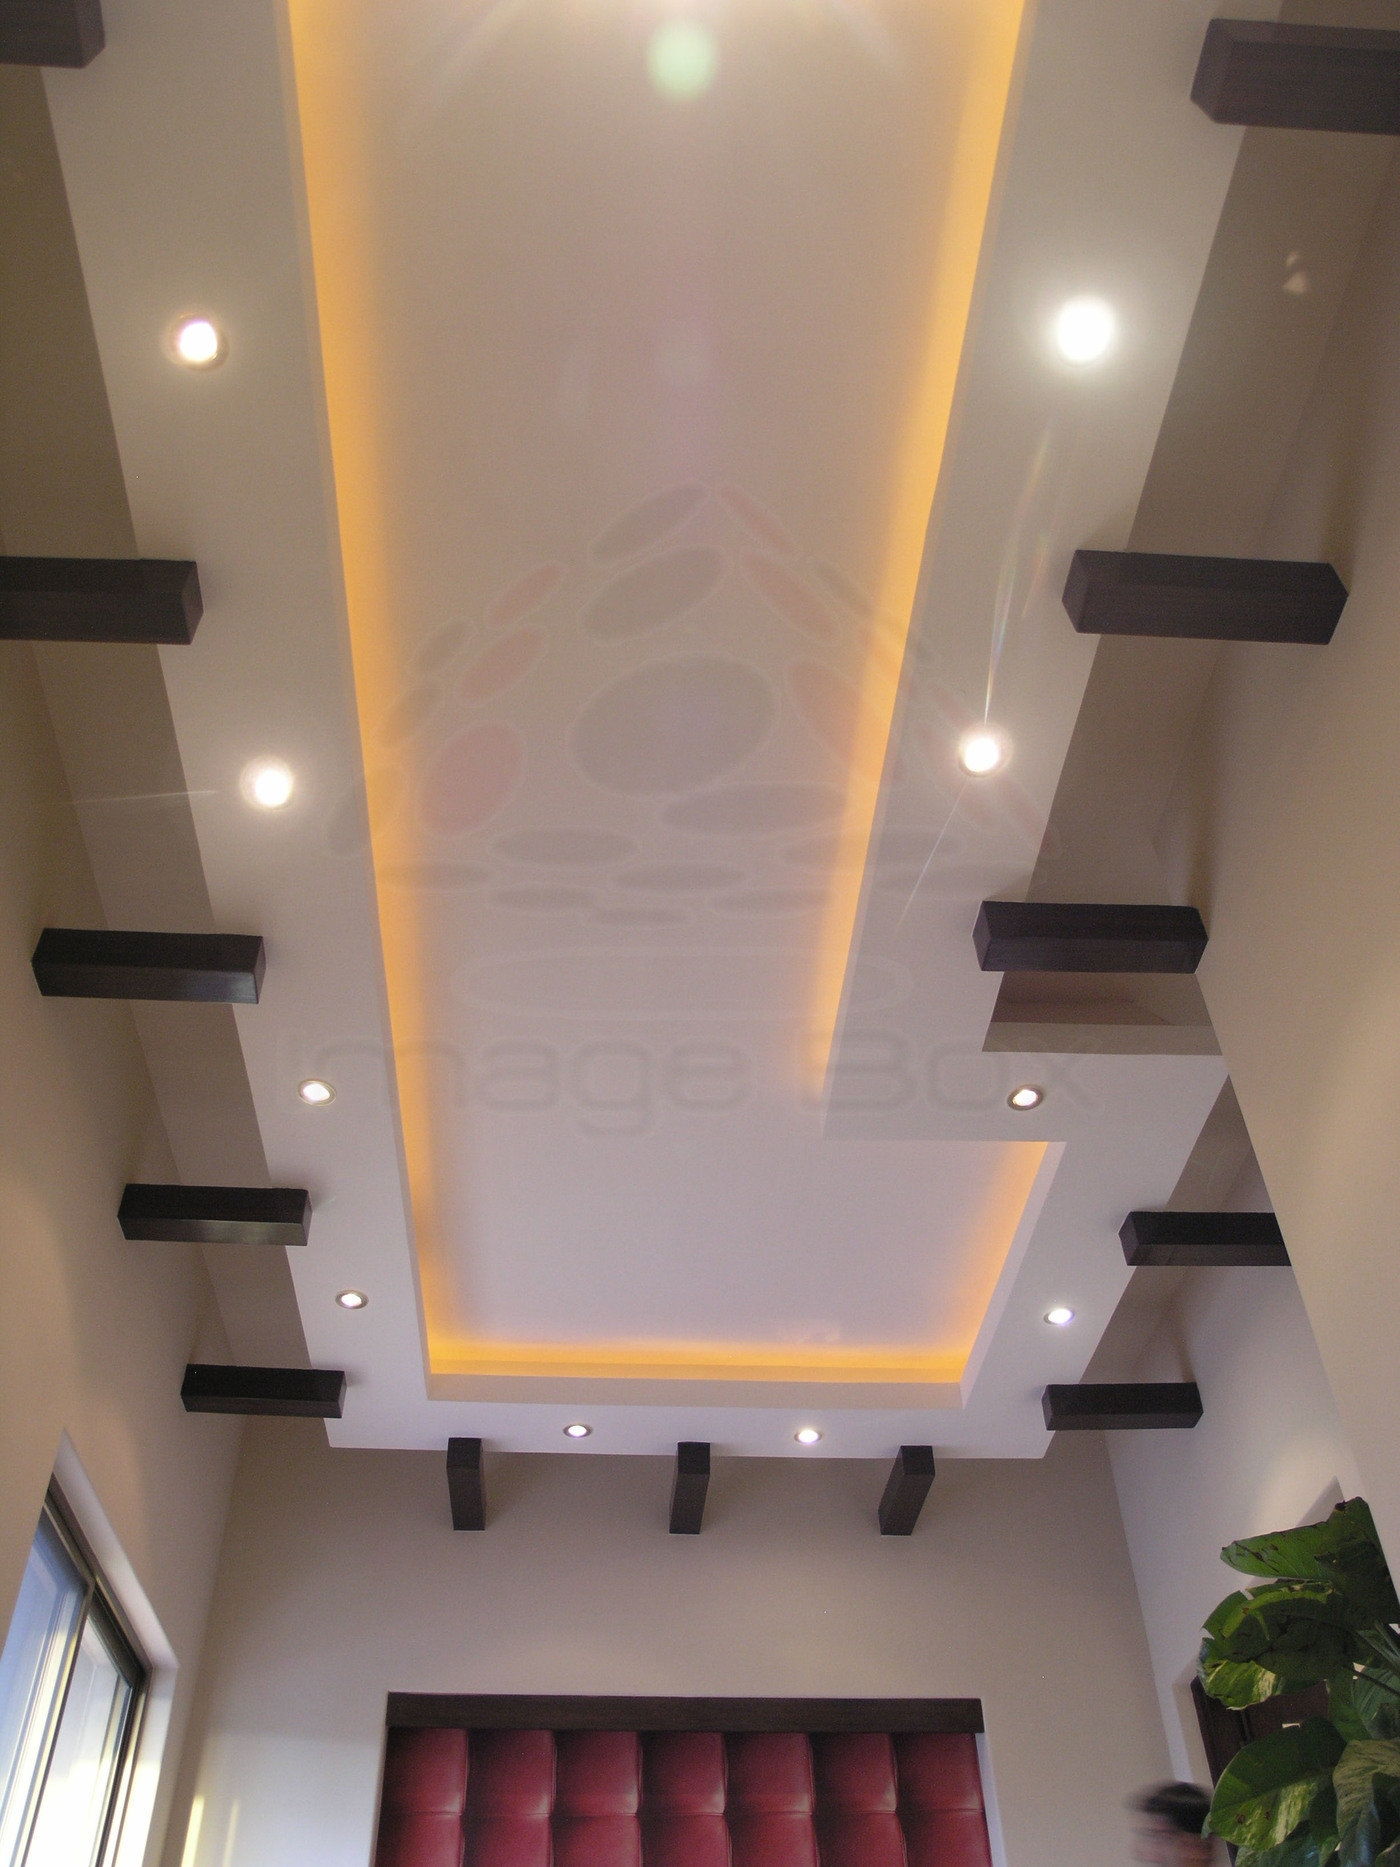 Masood Majeed Khan House By Image Box At Coroflot Com   Staircase False Ceiling Design   High Ceiling   Outside Wall   Interior   Fall Ceiling   Grand